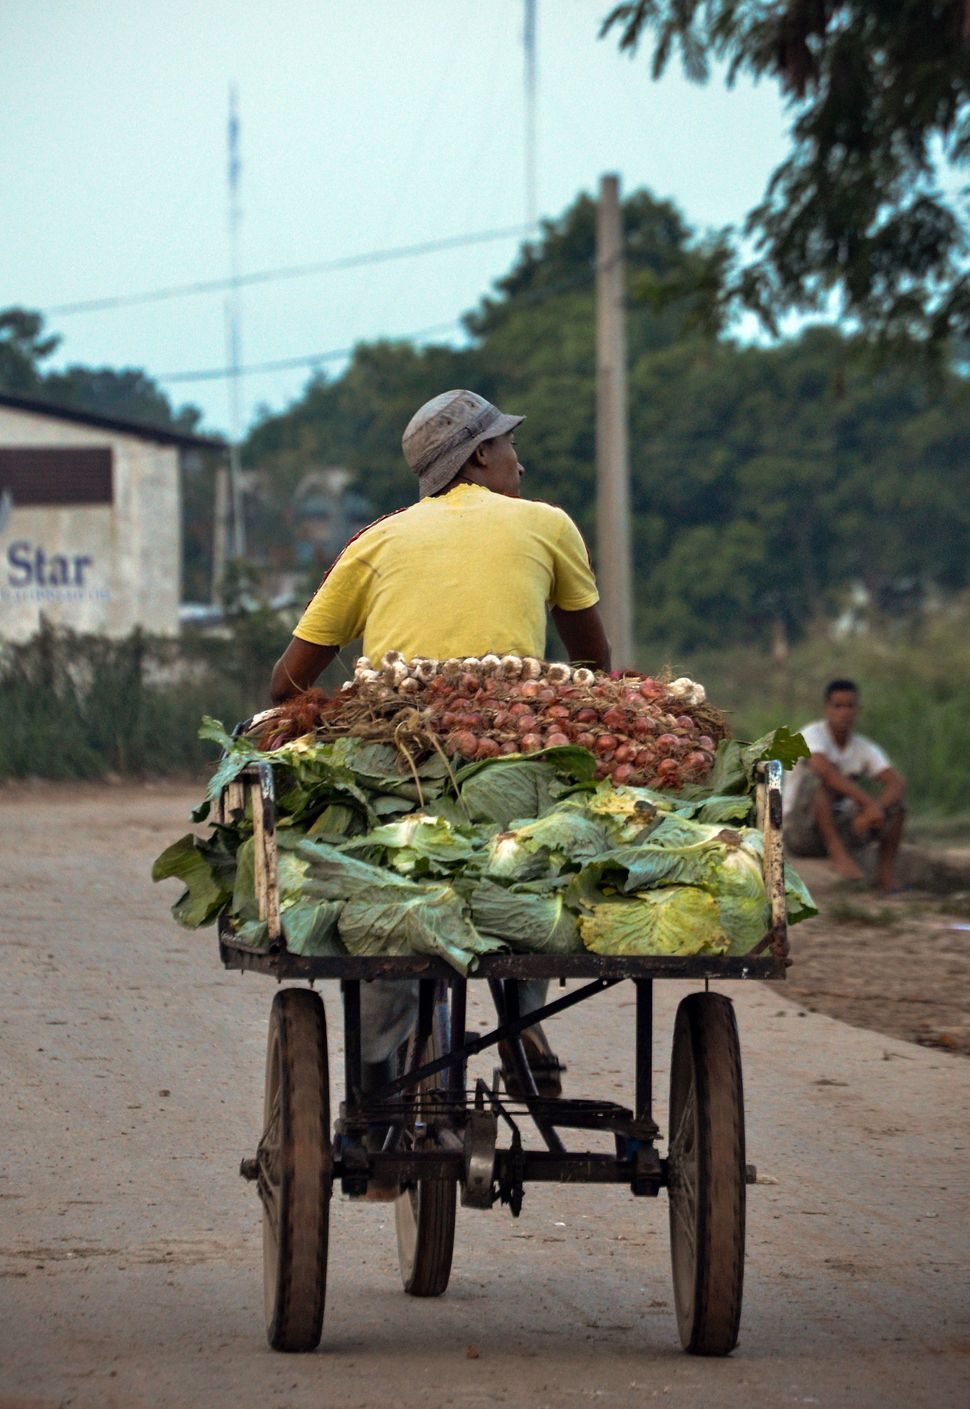 2013 - A fruits and vegetables retailer leaves a wholesale market in Havana.